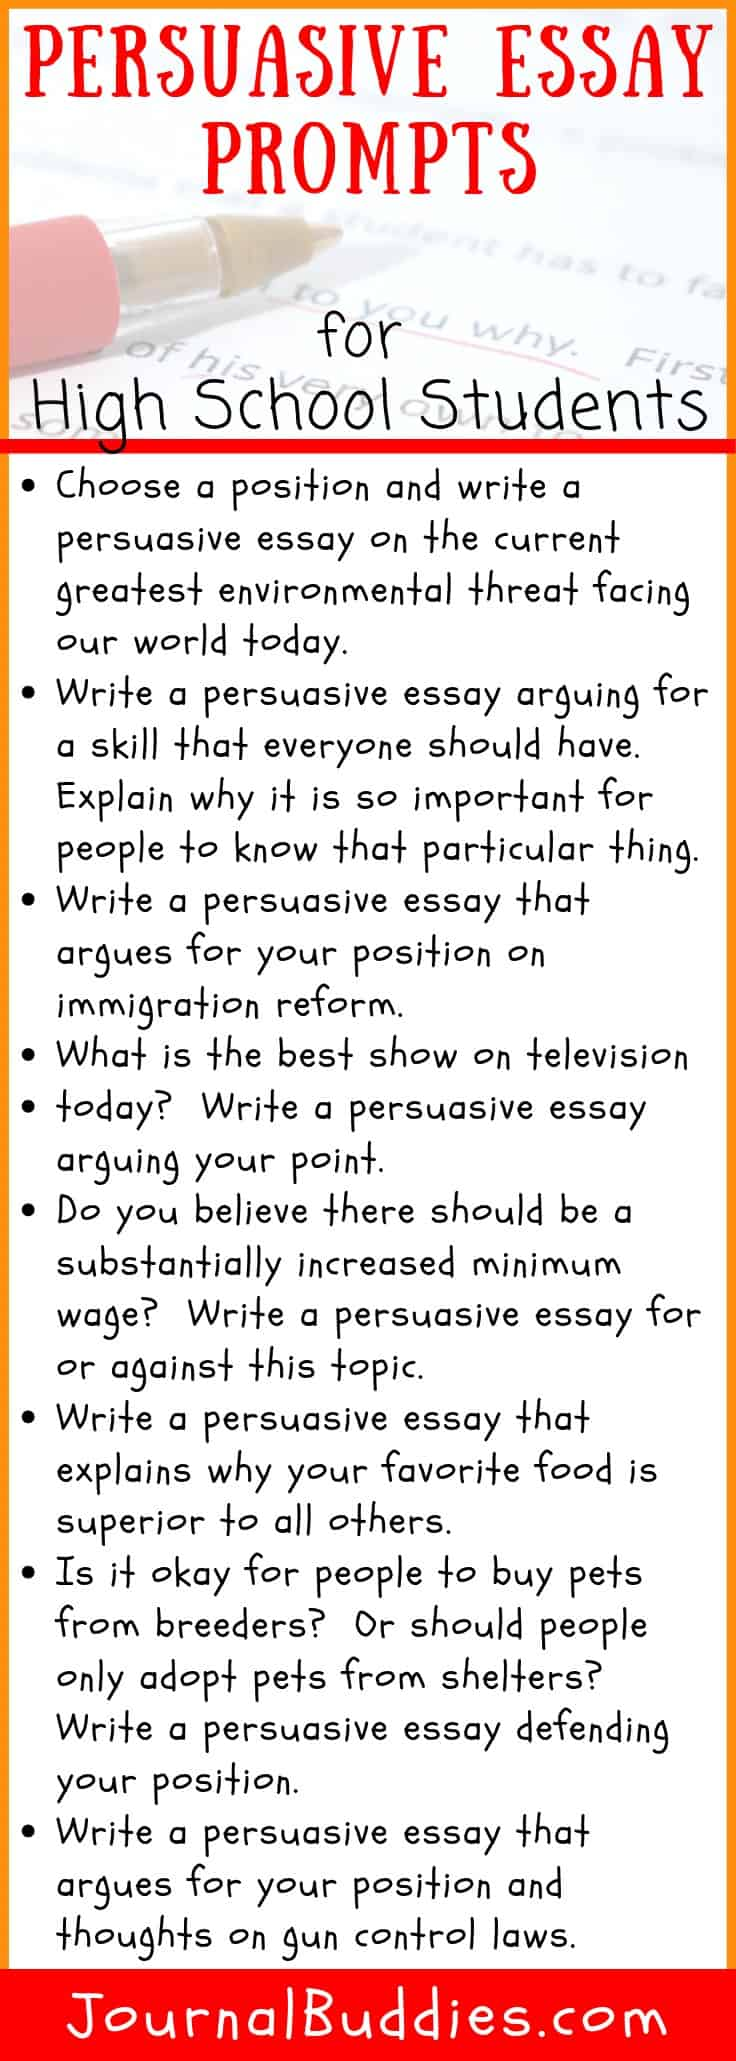 High School Persuasive Essay Topics and Tips